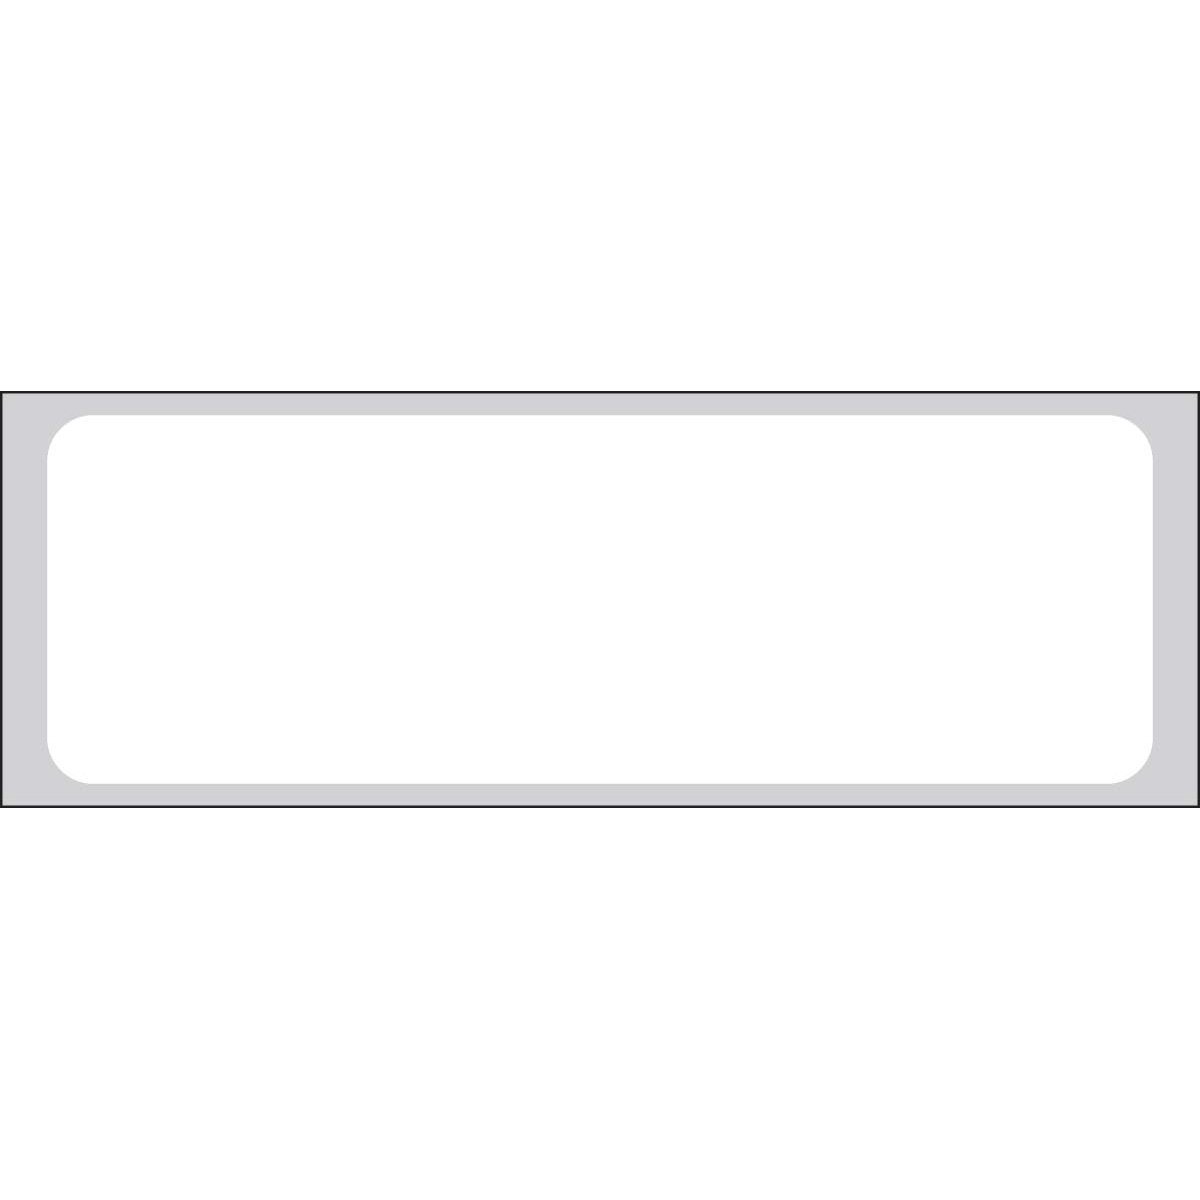 PDC ADLR-13 Removable Label Paper Litho List price Paperstock Smudgeproof Columbus Mall